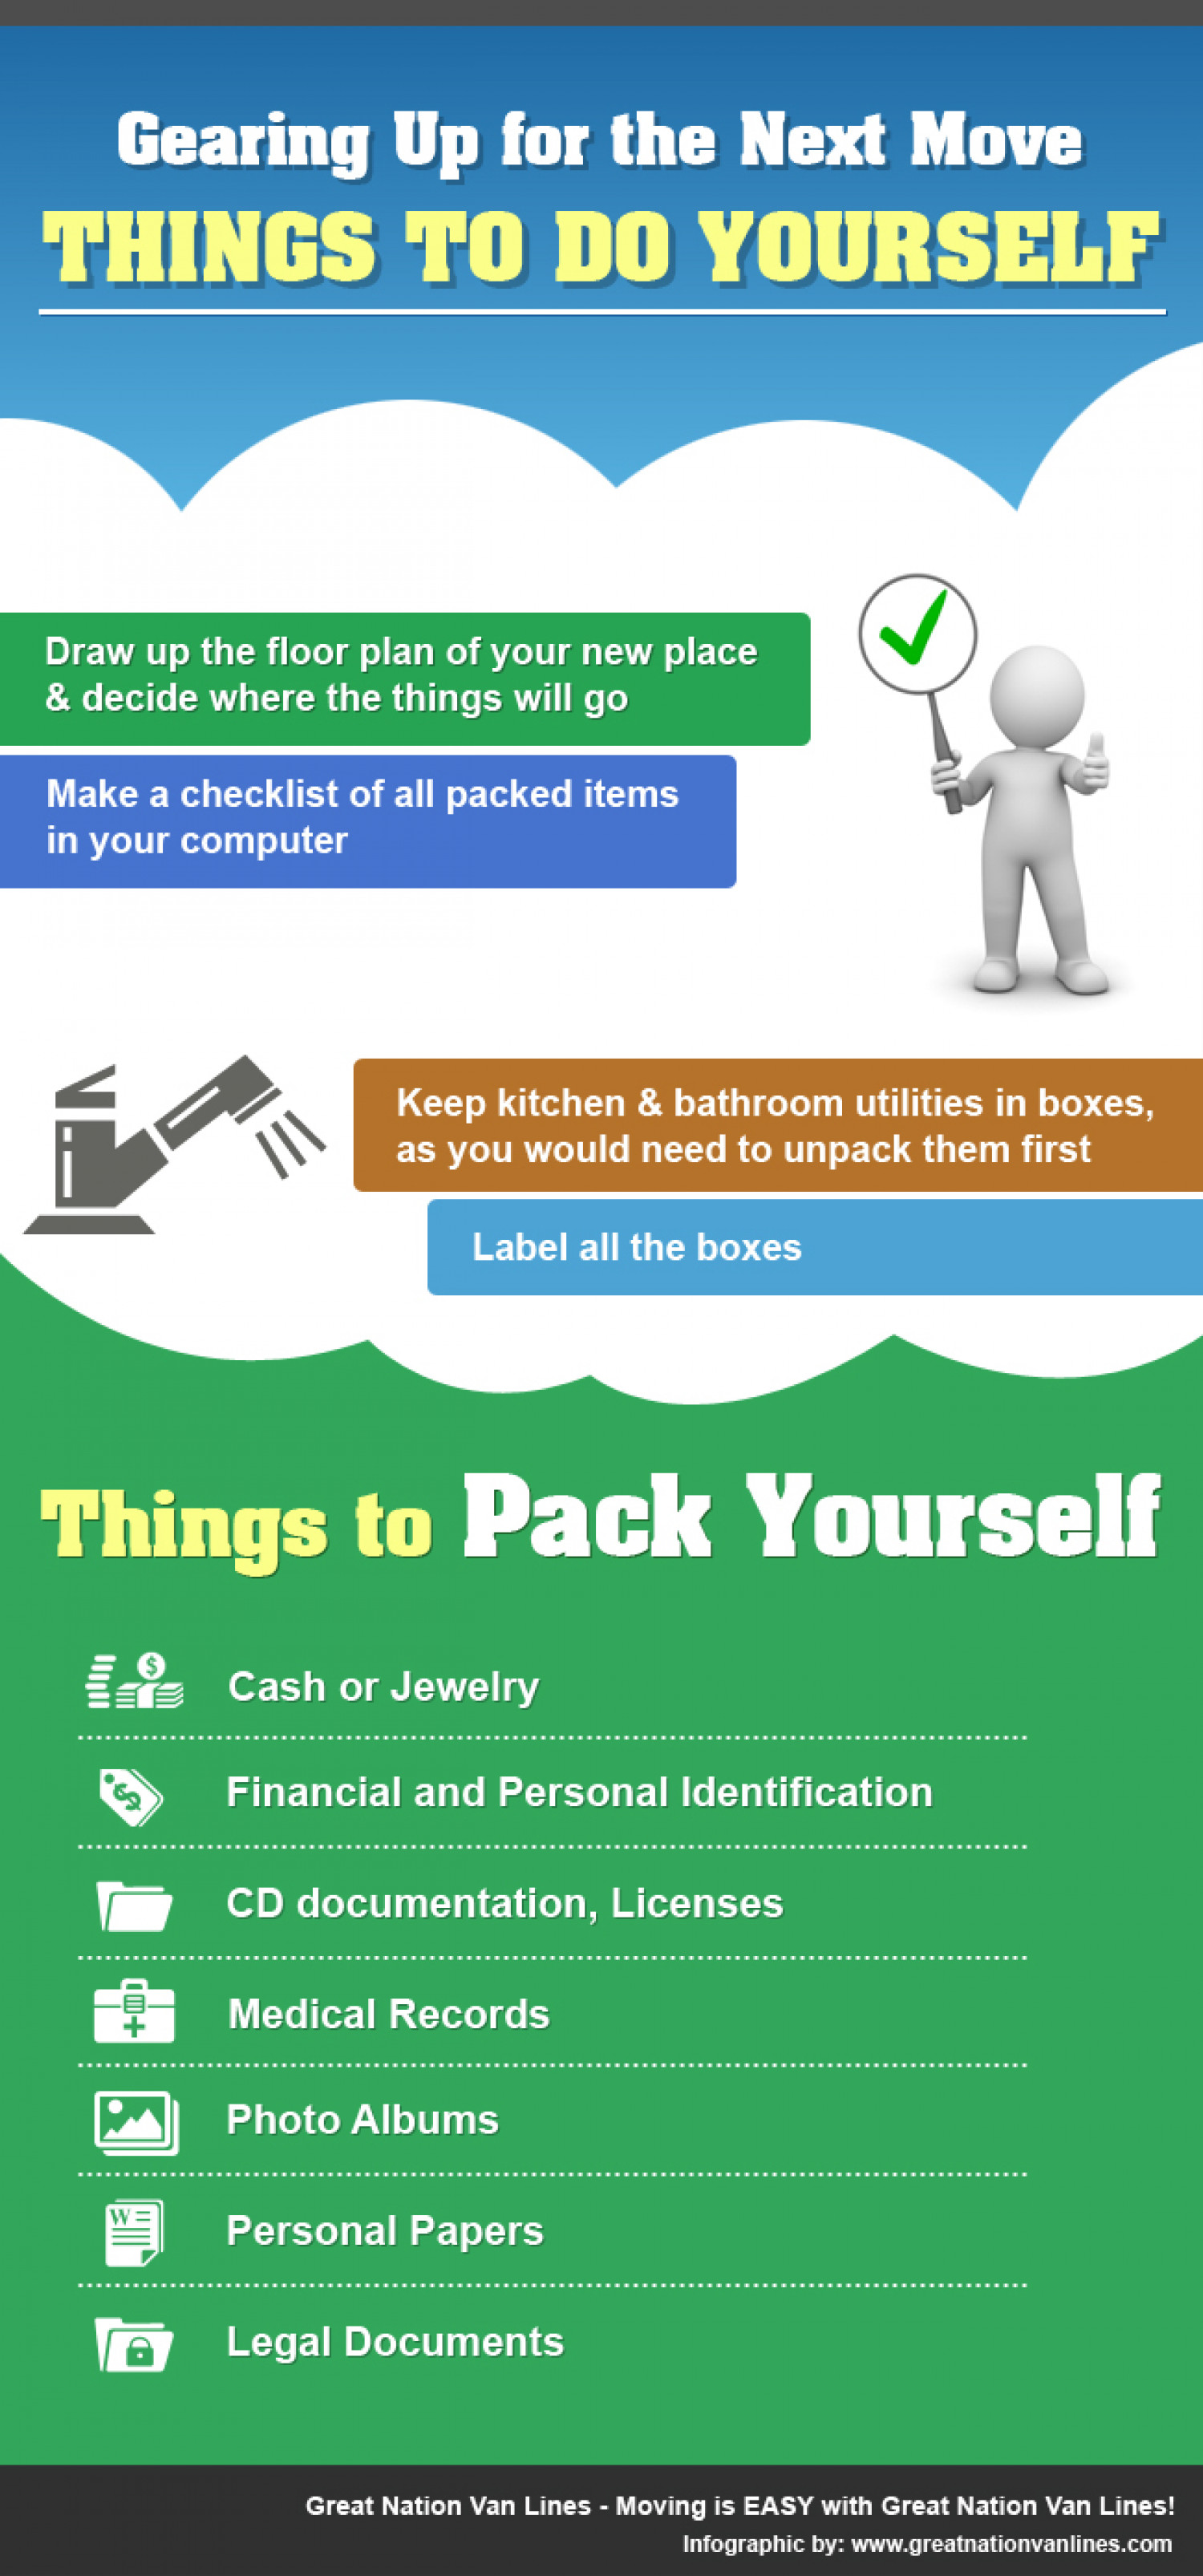 Gearing Up for the Next Move: Things to Do Yourself Infographic